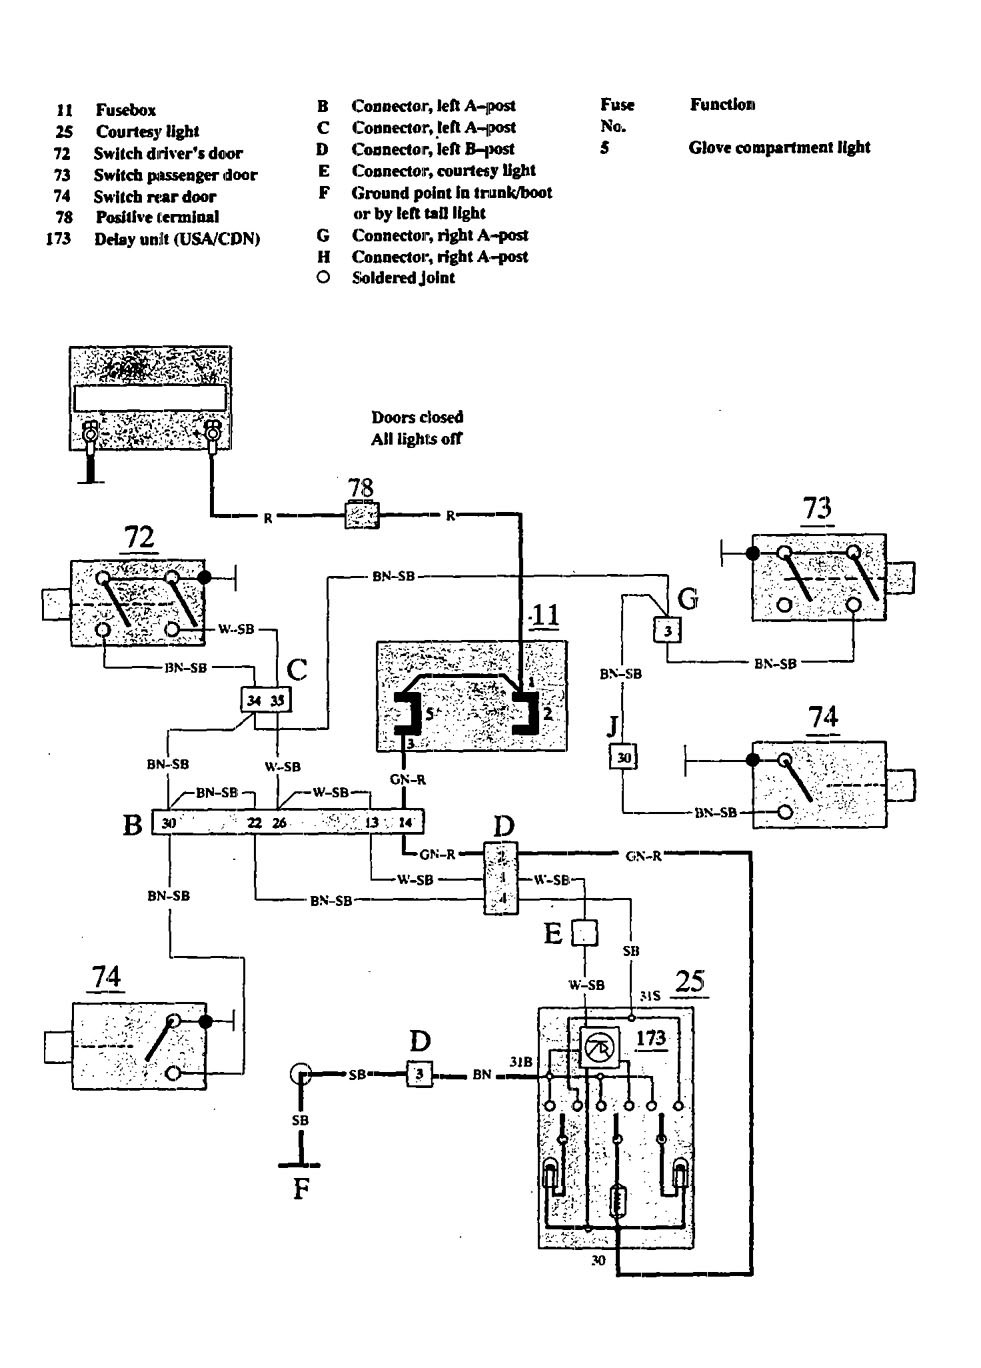 Volvo 940 Wiring Diagram Also 1996 Volvo 960 Engine Diagram On 93 1997  Volvo 850 Wiring-Diagram 1991 Volvo 940 Wiring Diagram